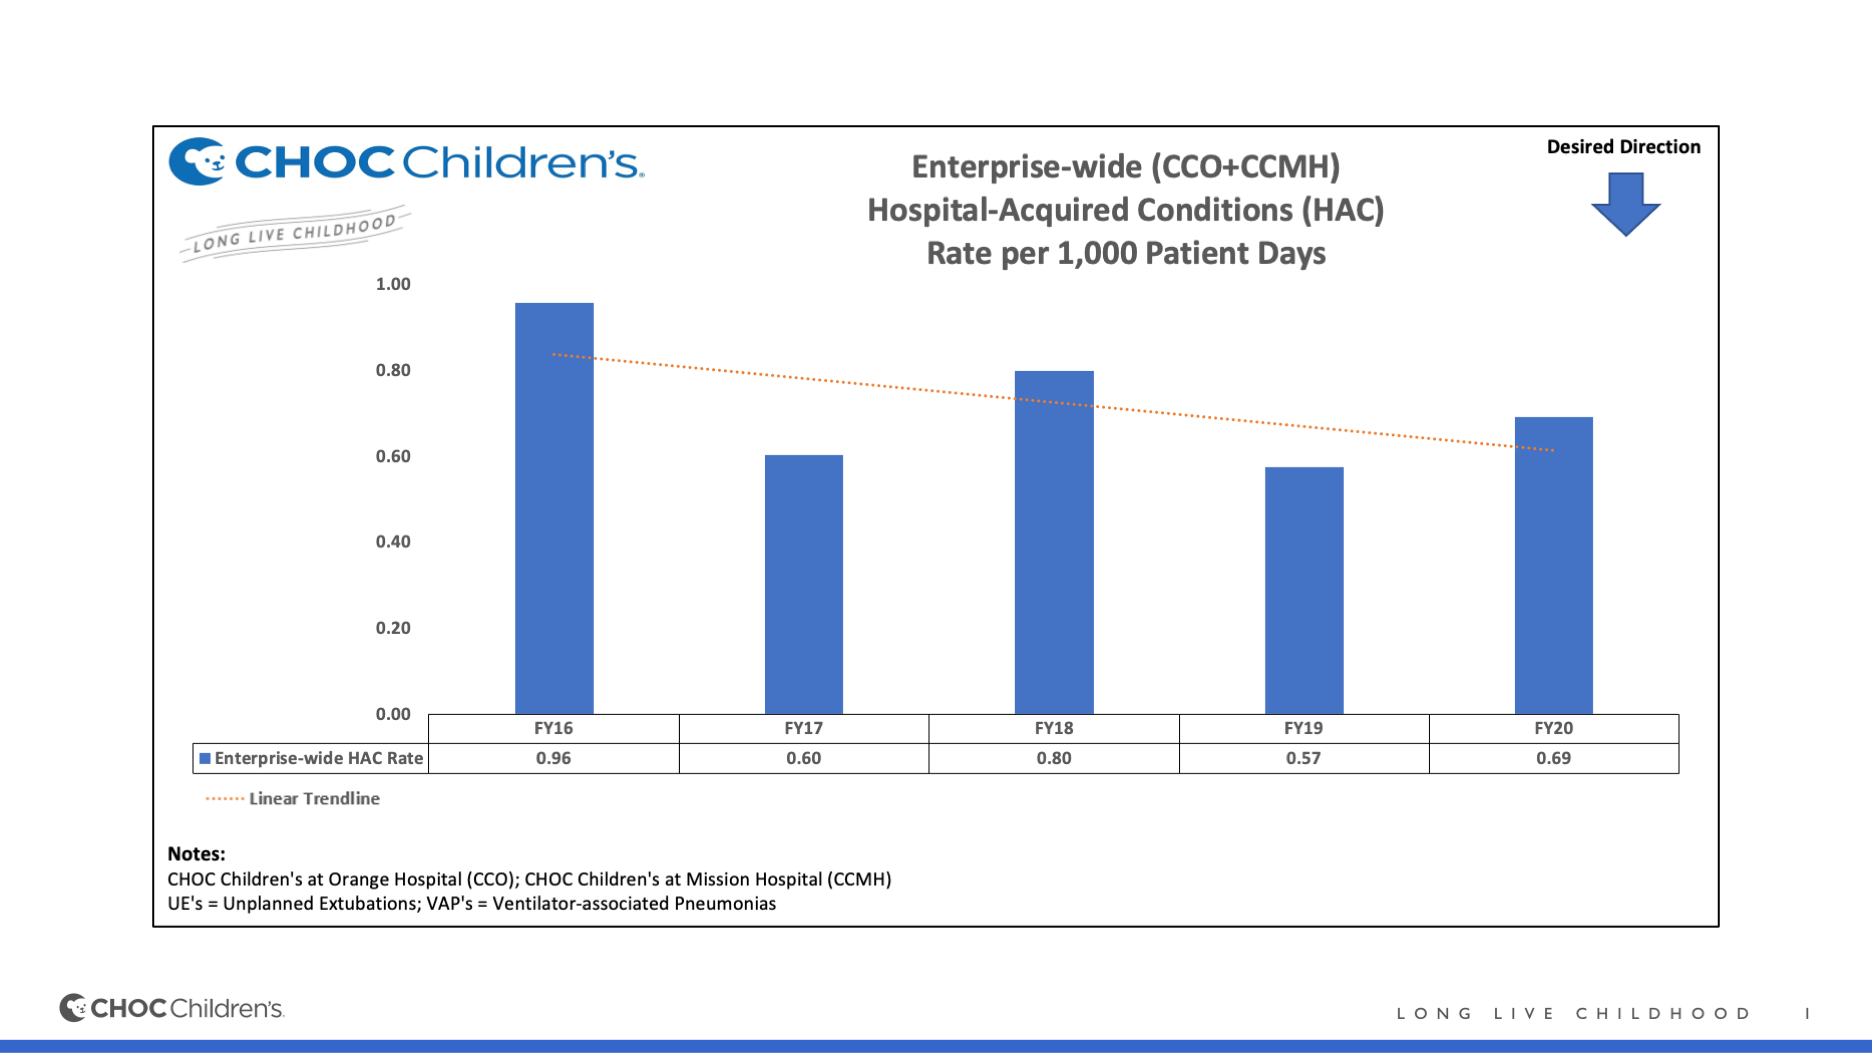 Hospital-Acquired Conditions at CHOC Children's